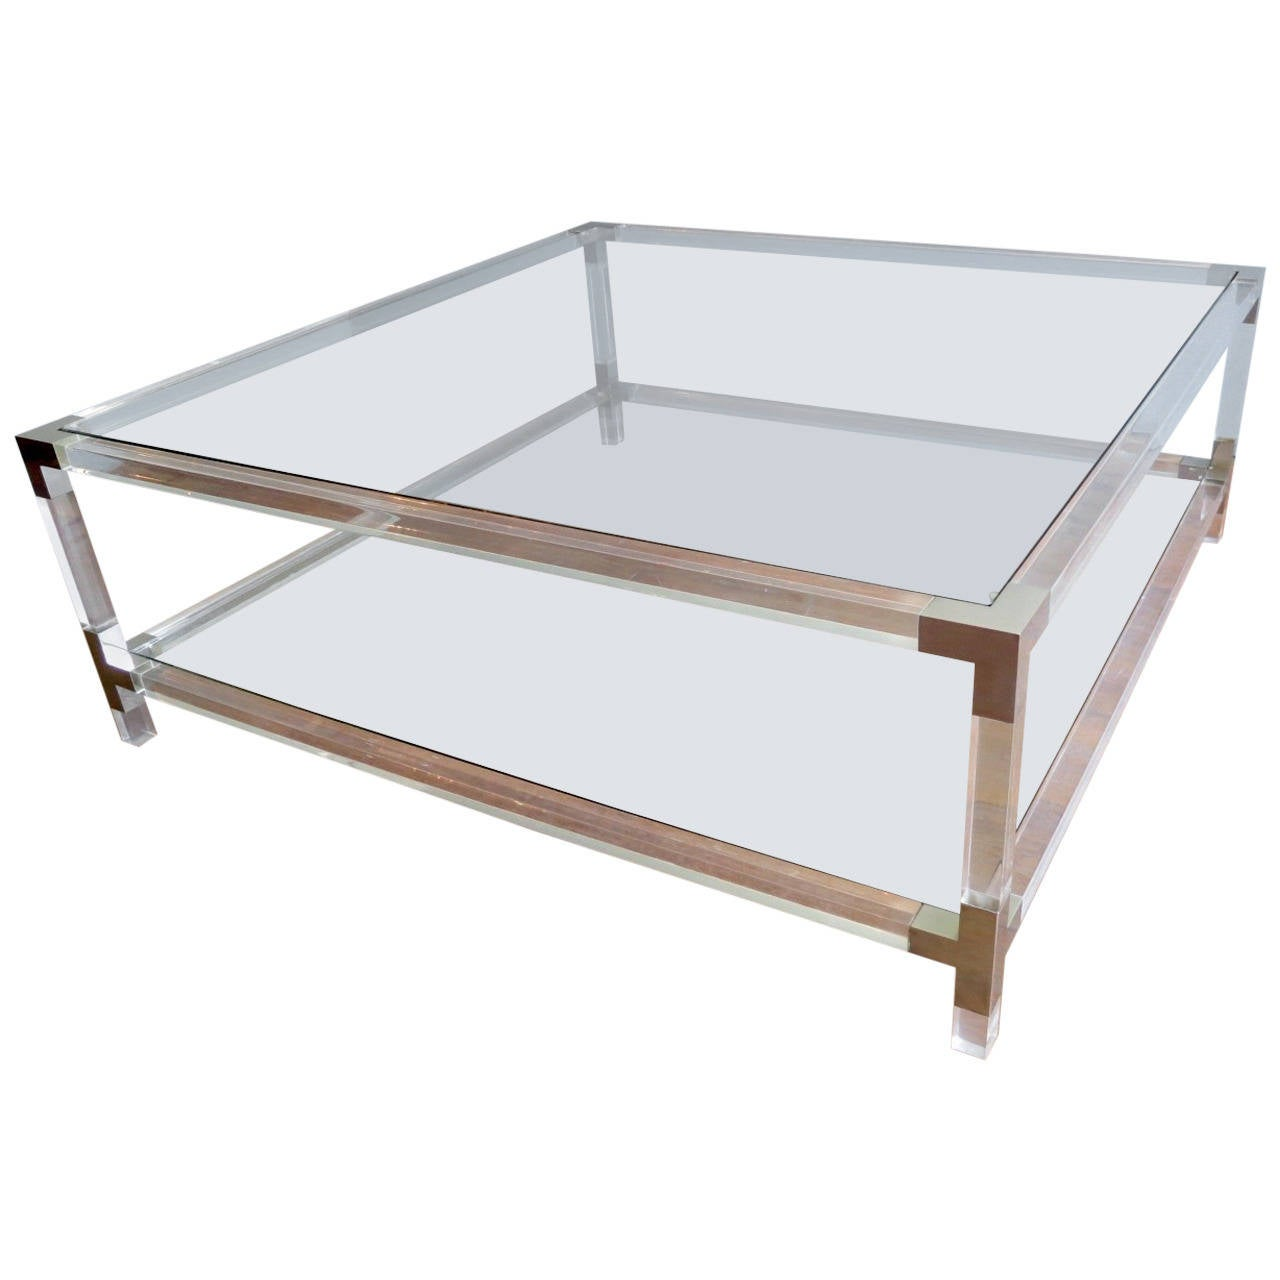 Large square lucite coffee table at 1stdibs Large square coffee table